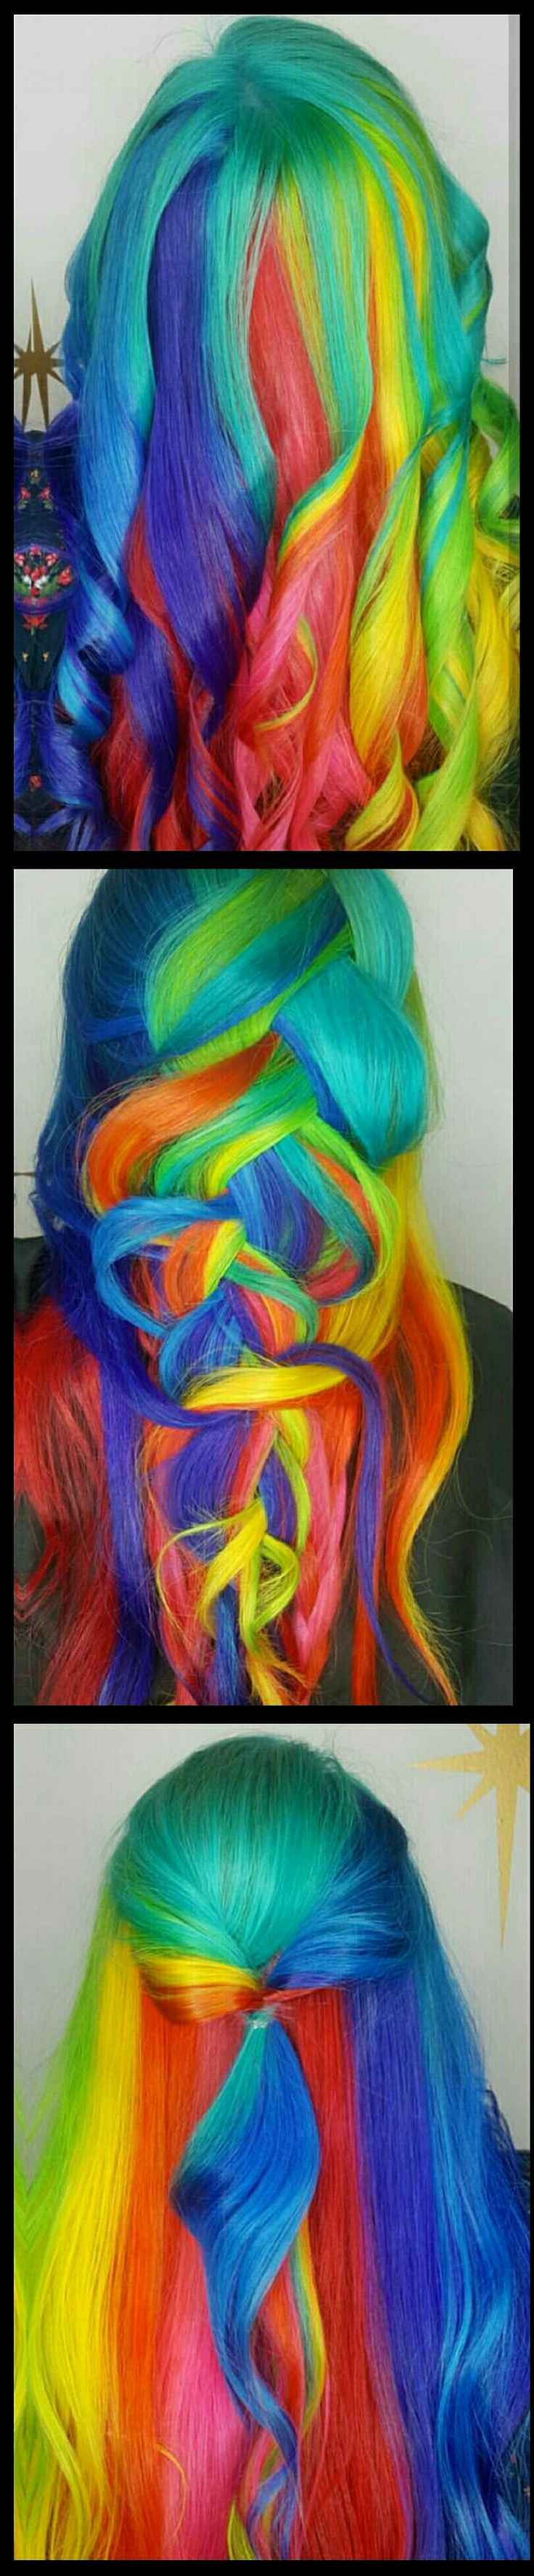 Rainbow dyed hair @lilrainb0w